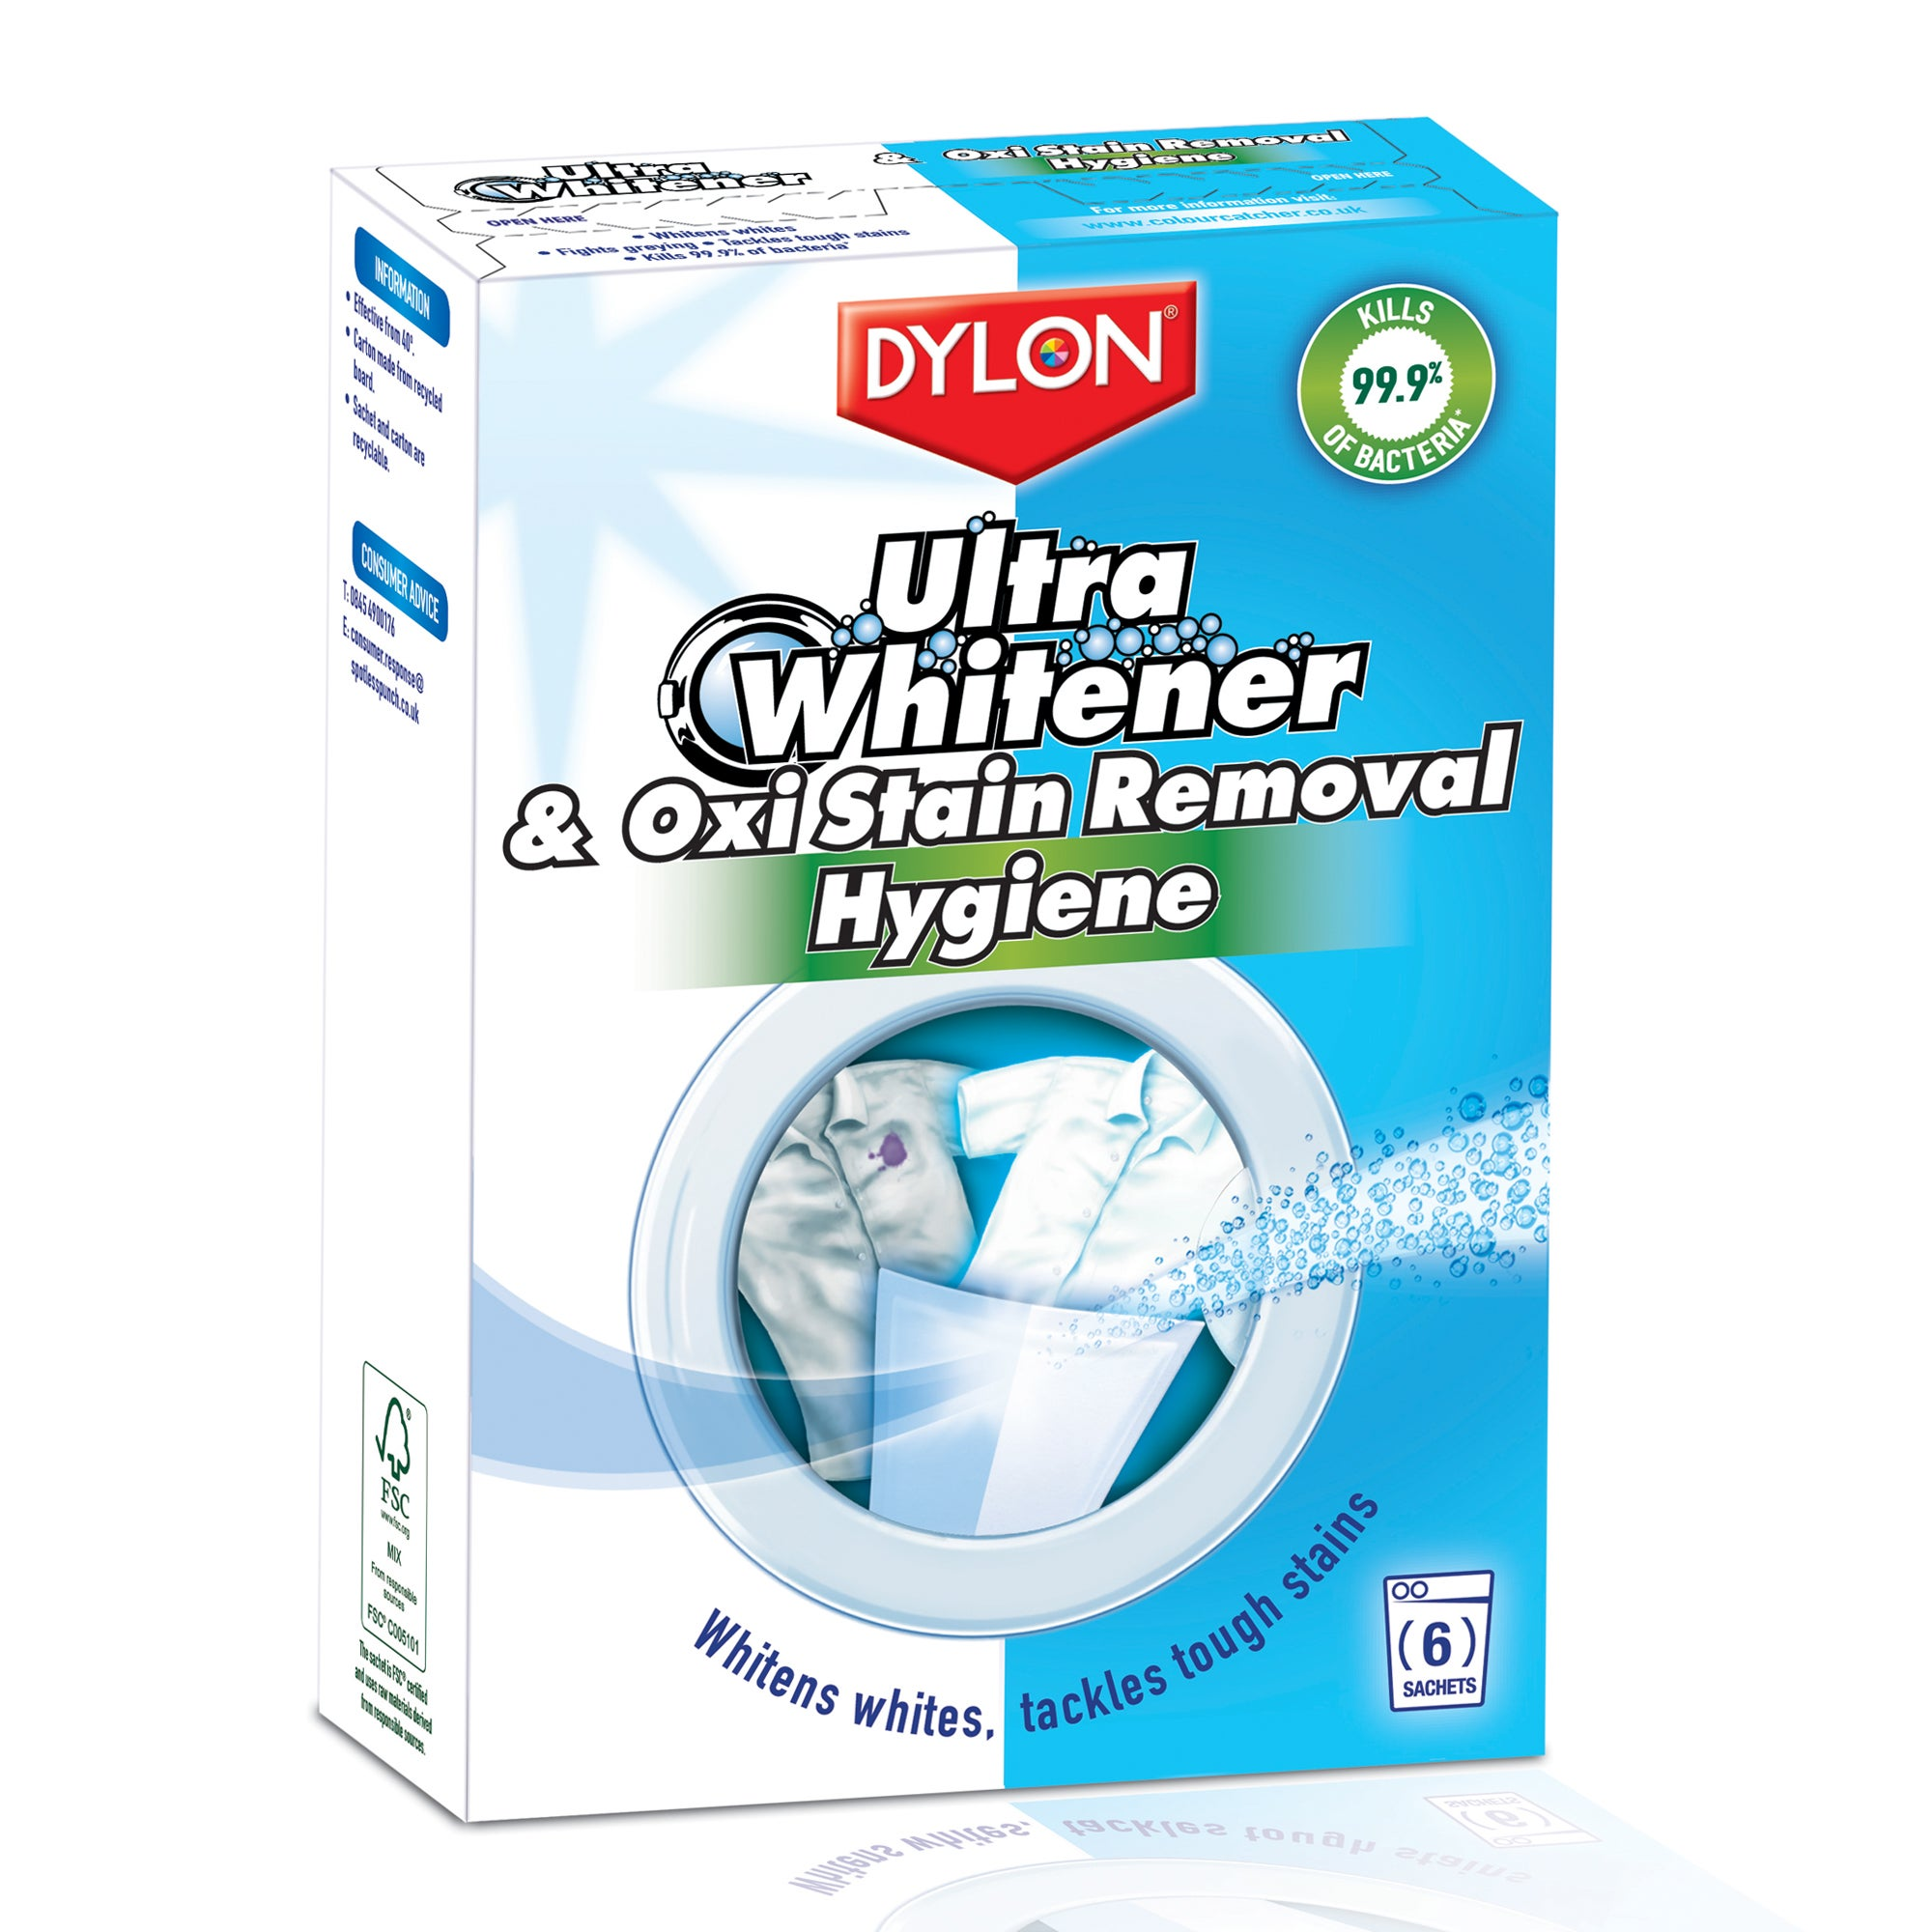 Dylon Ultra Whitener and Oxi Hygiene